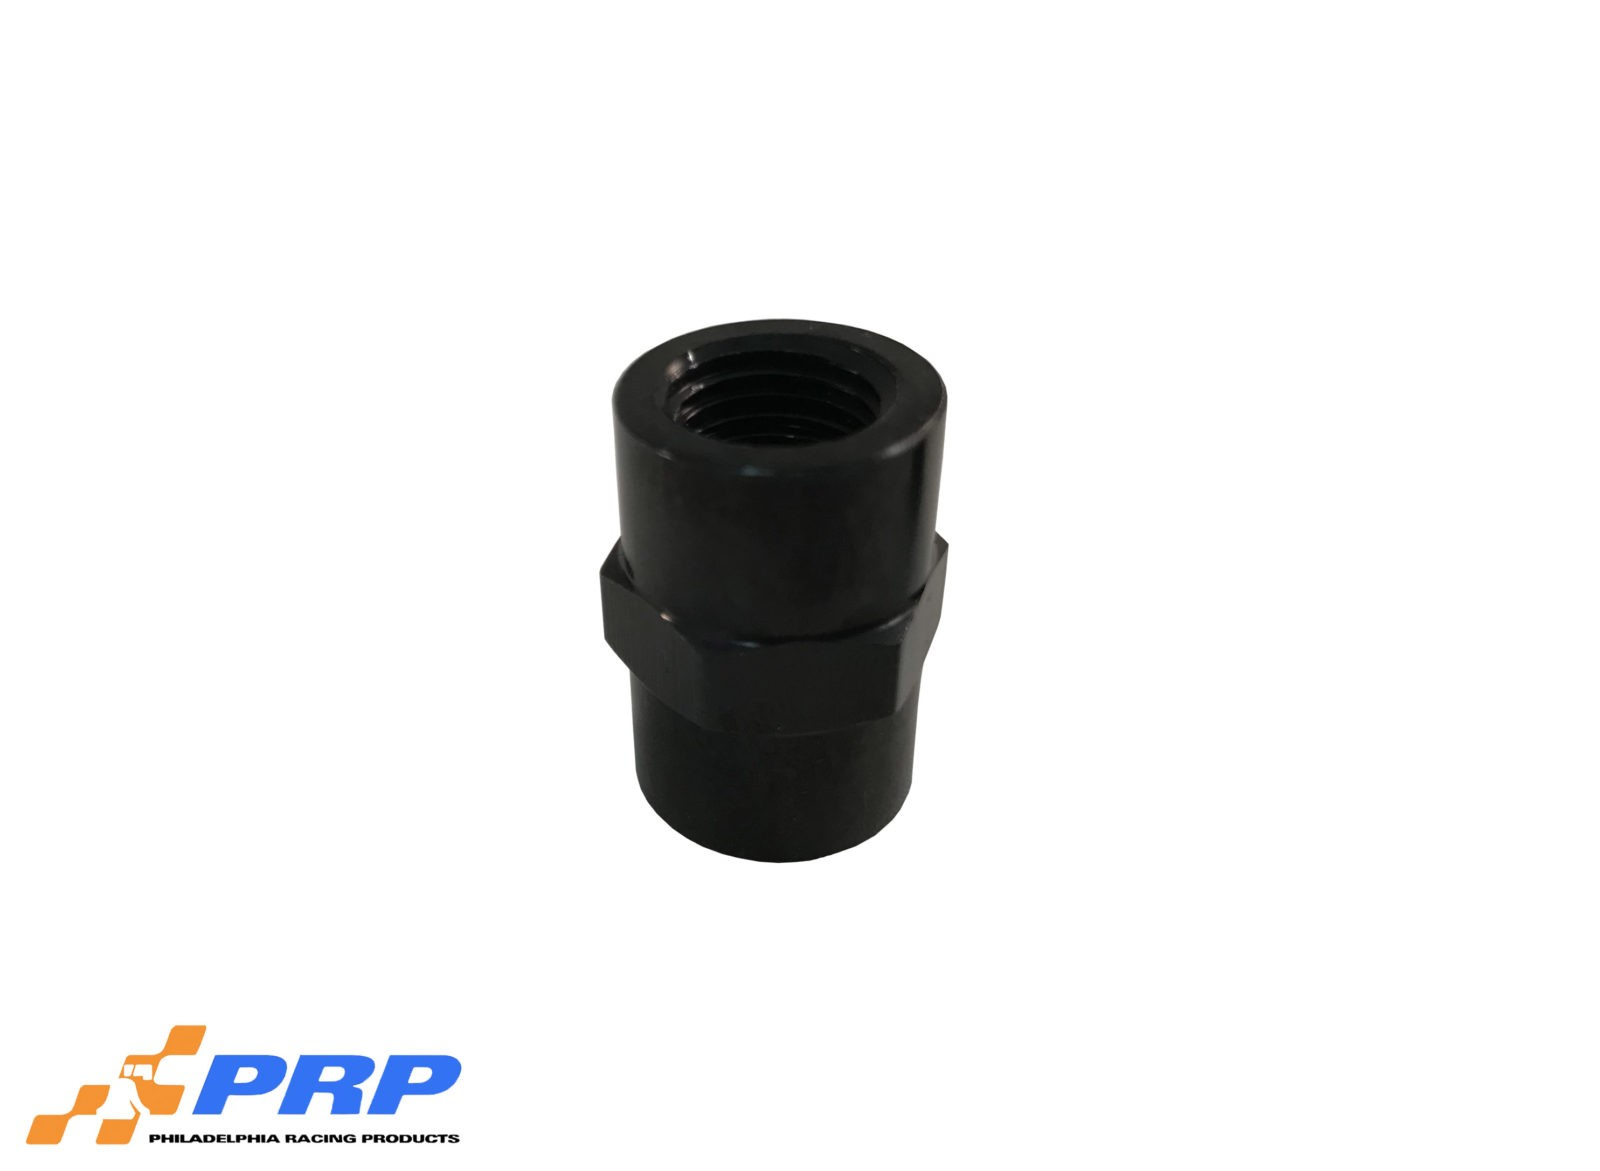 "Black Female Pipe Thread Coupler 1/4"" made by PRP Racing Products"